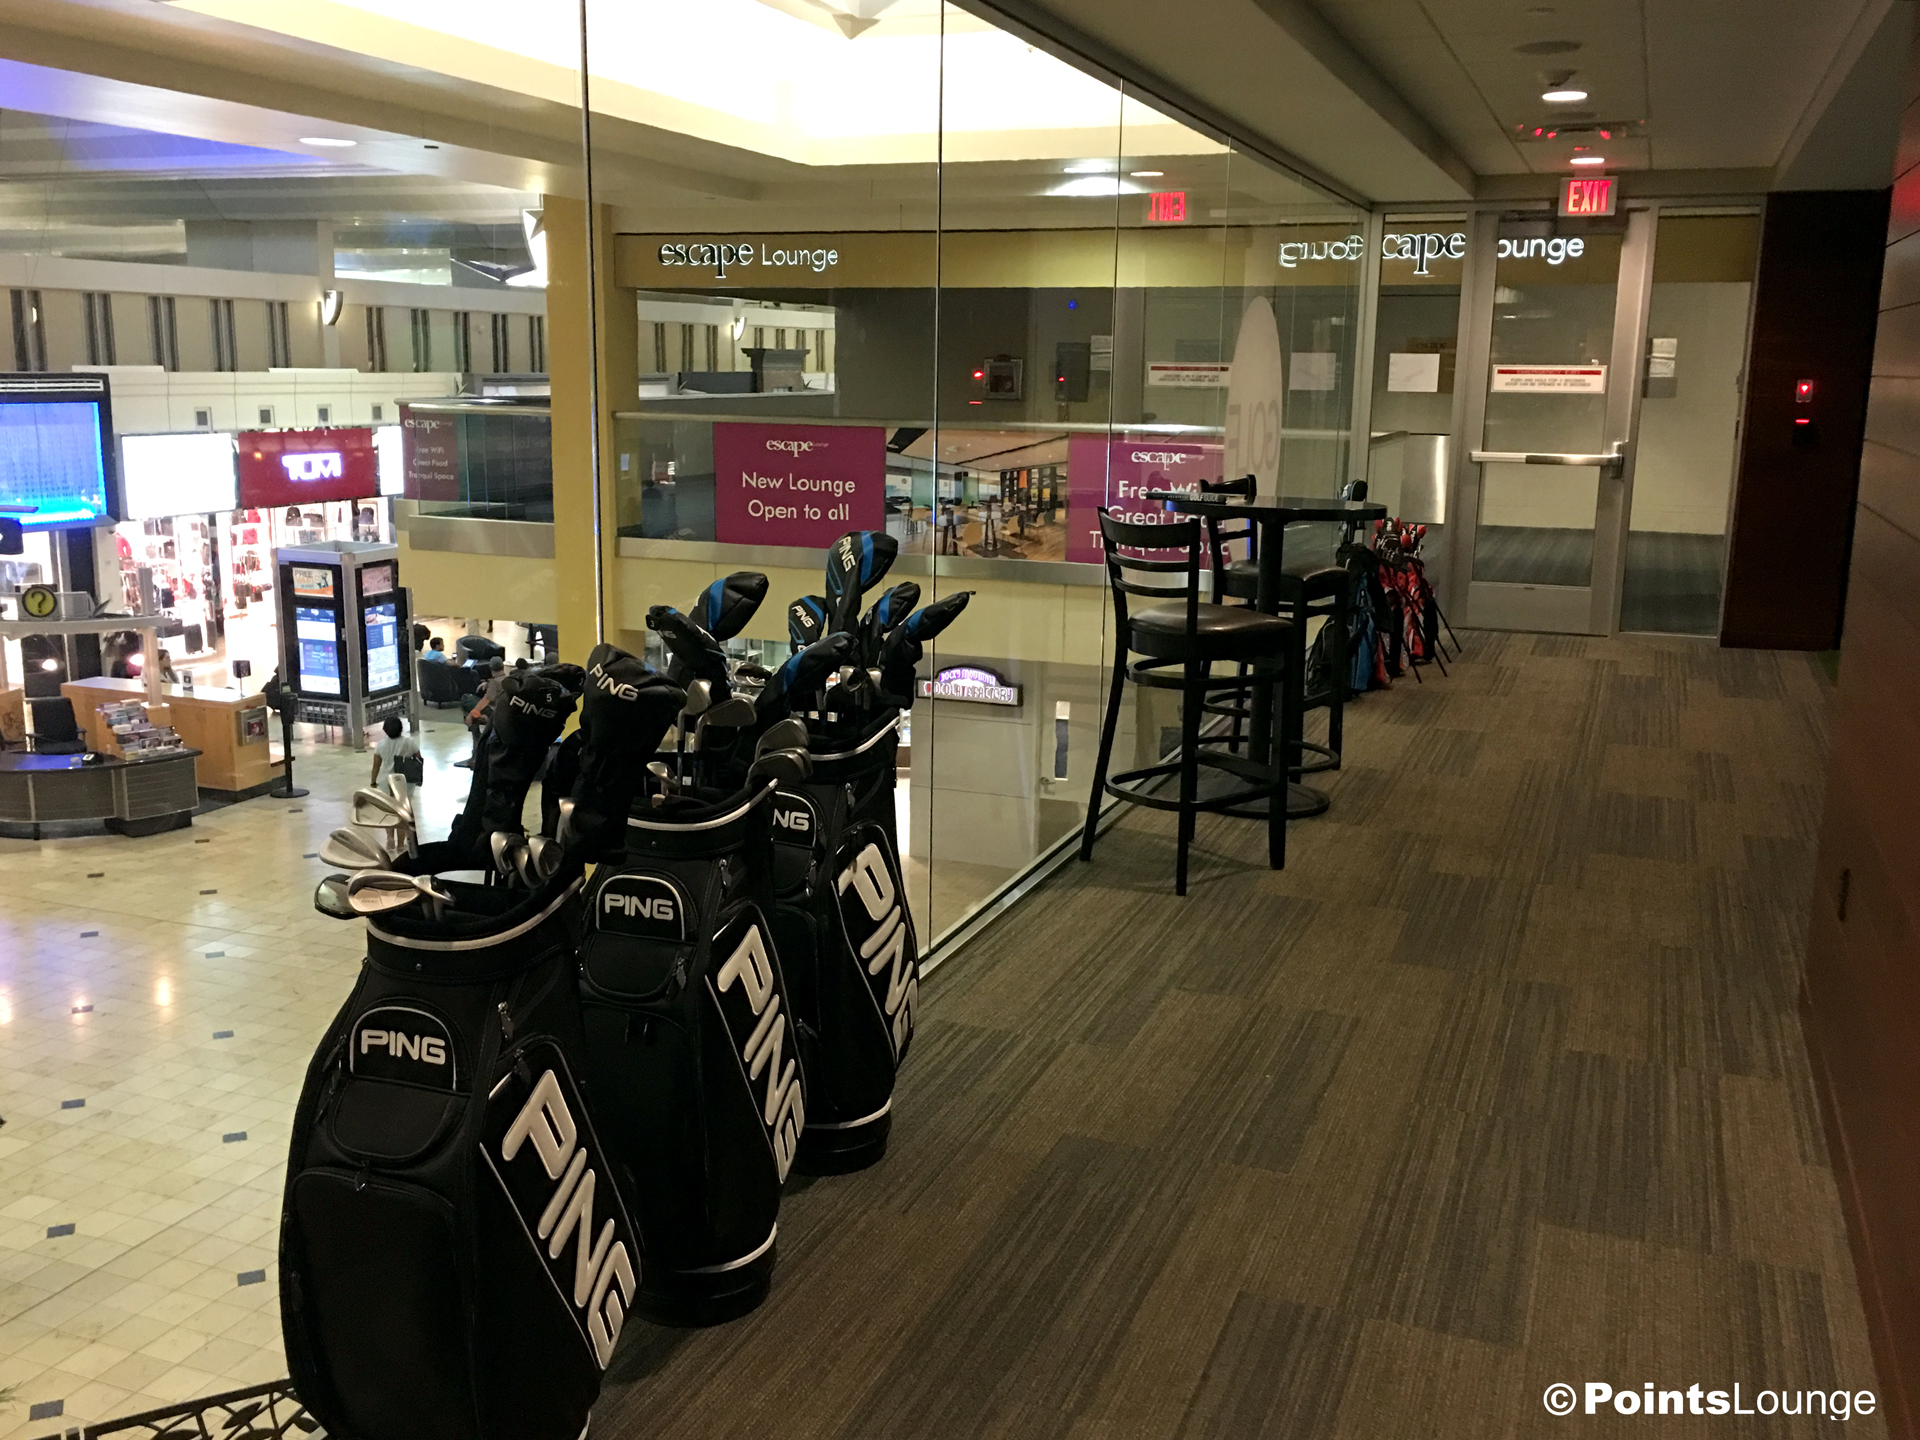 Ping golf clubs and bags are displayed inside the PGA MSP golf-themed airport lounge at the Minneapolis-St. Paul International Airport. One of the ways the lounge can be accessed is with Priority Pass membership. (Click for a larger image.)